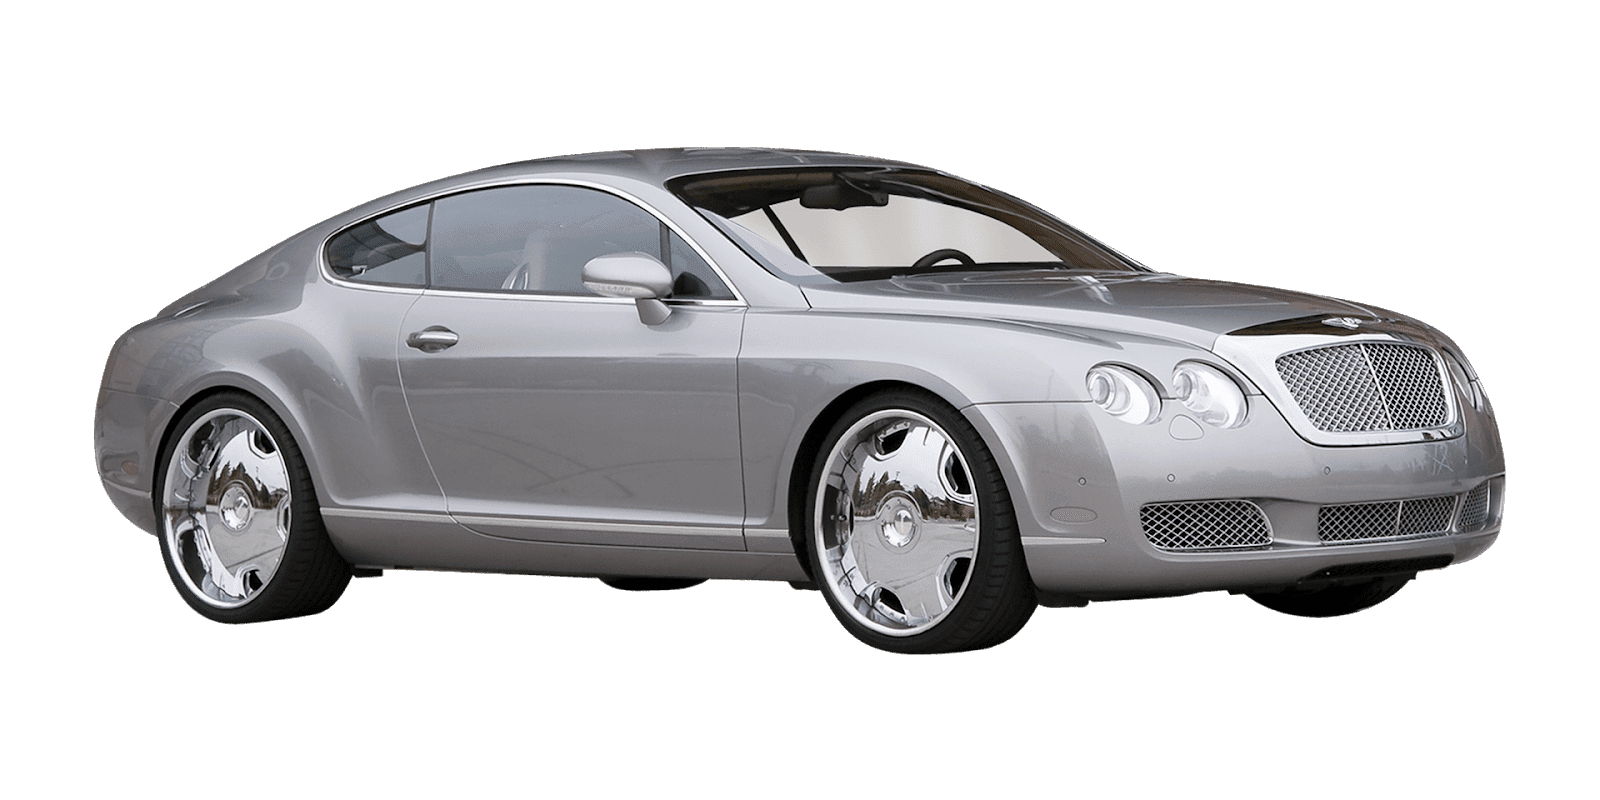 Bentley Continental GT Will Give You An Eargasm With Bangin' Stereo